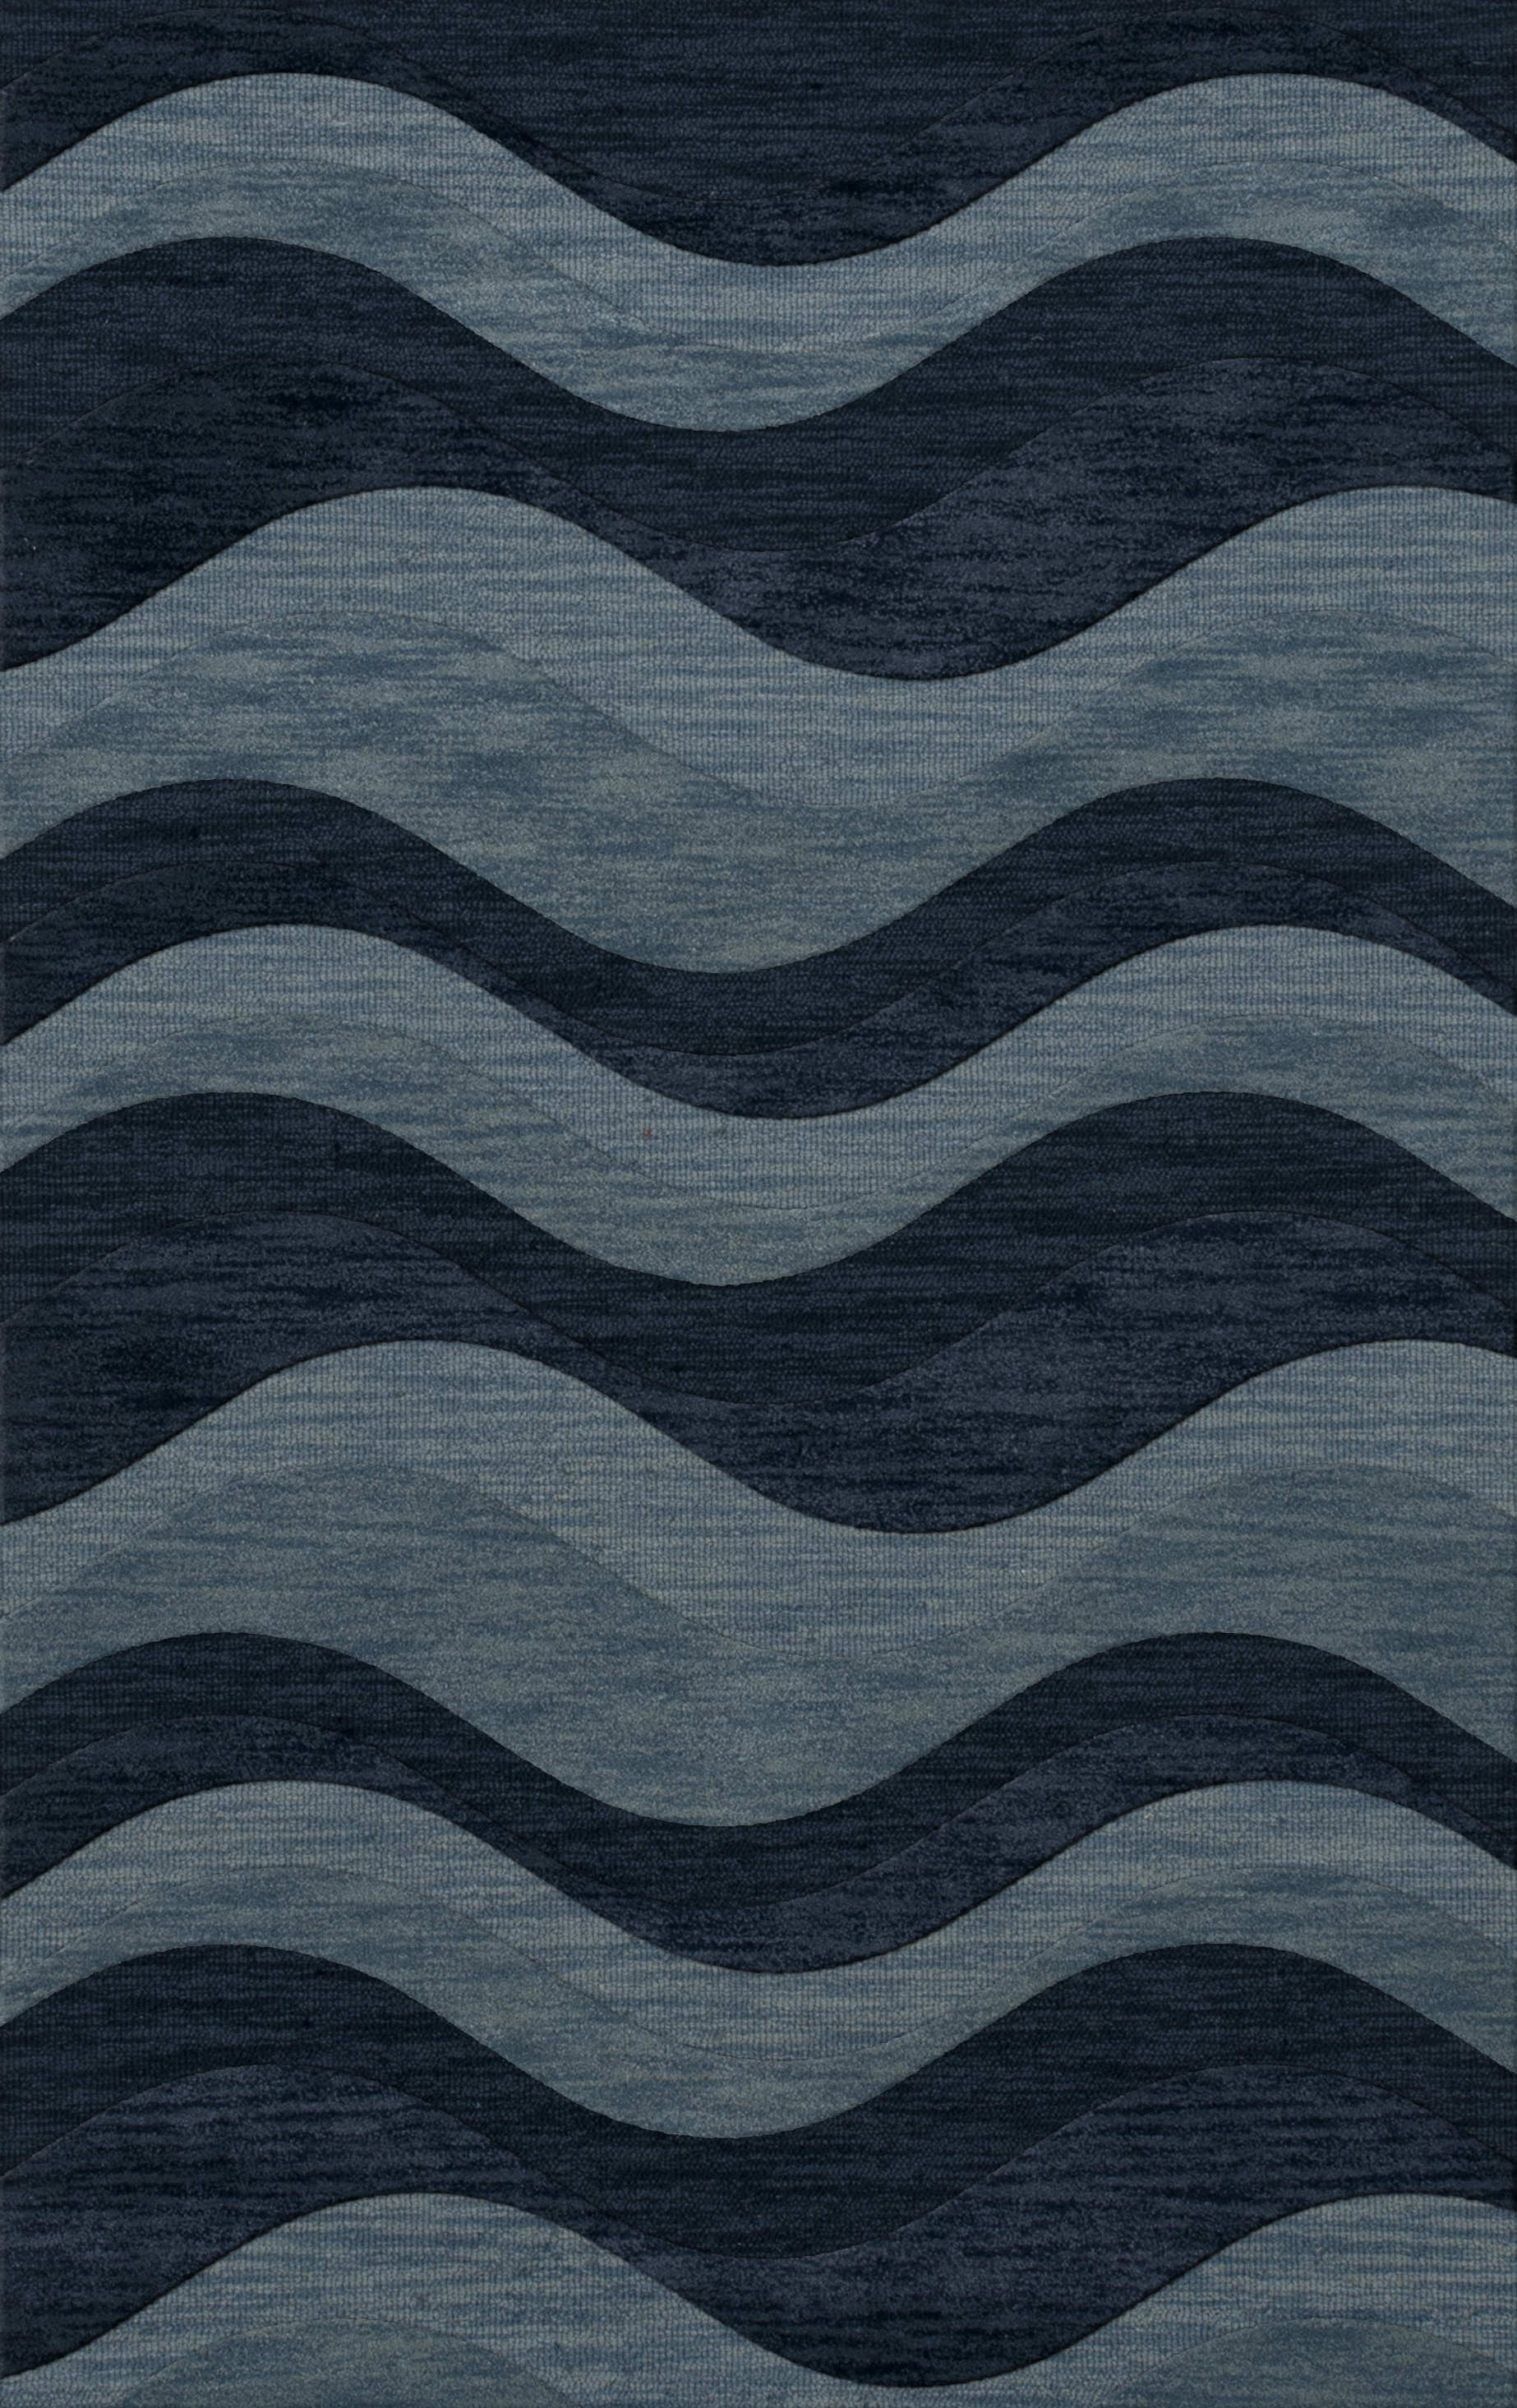 Cool rectangle dalyn rugs in blue waves motif for floor decor ideas